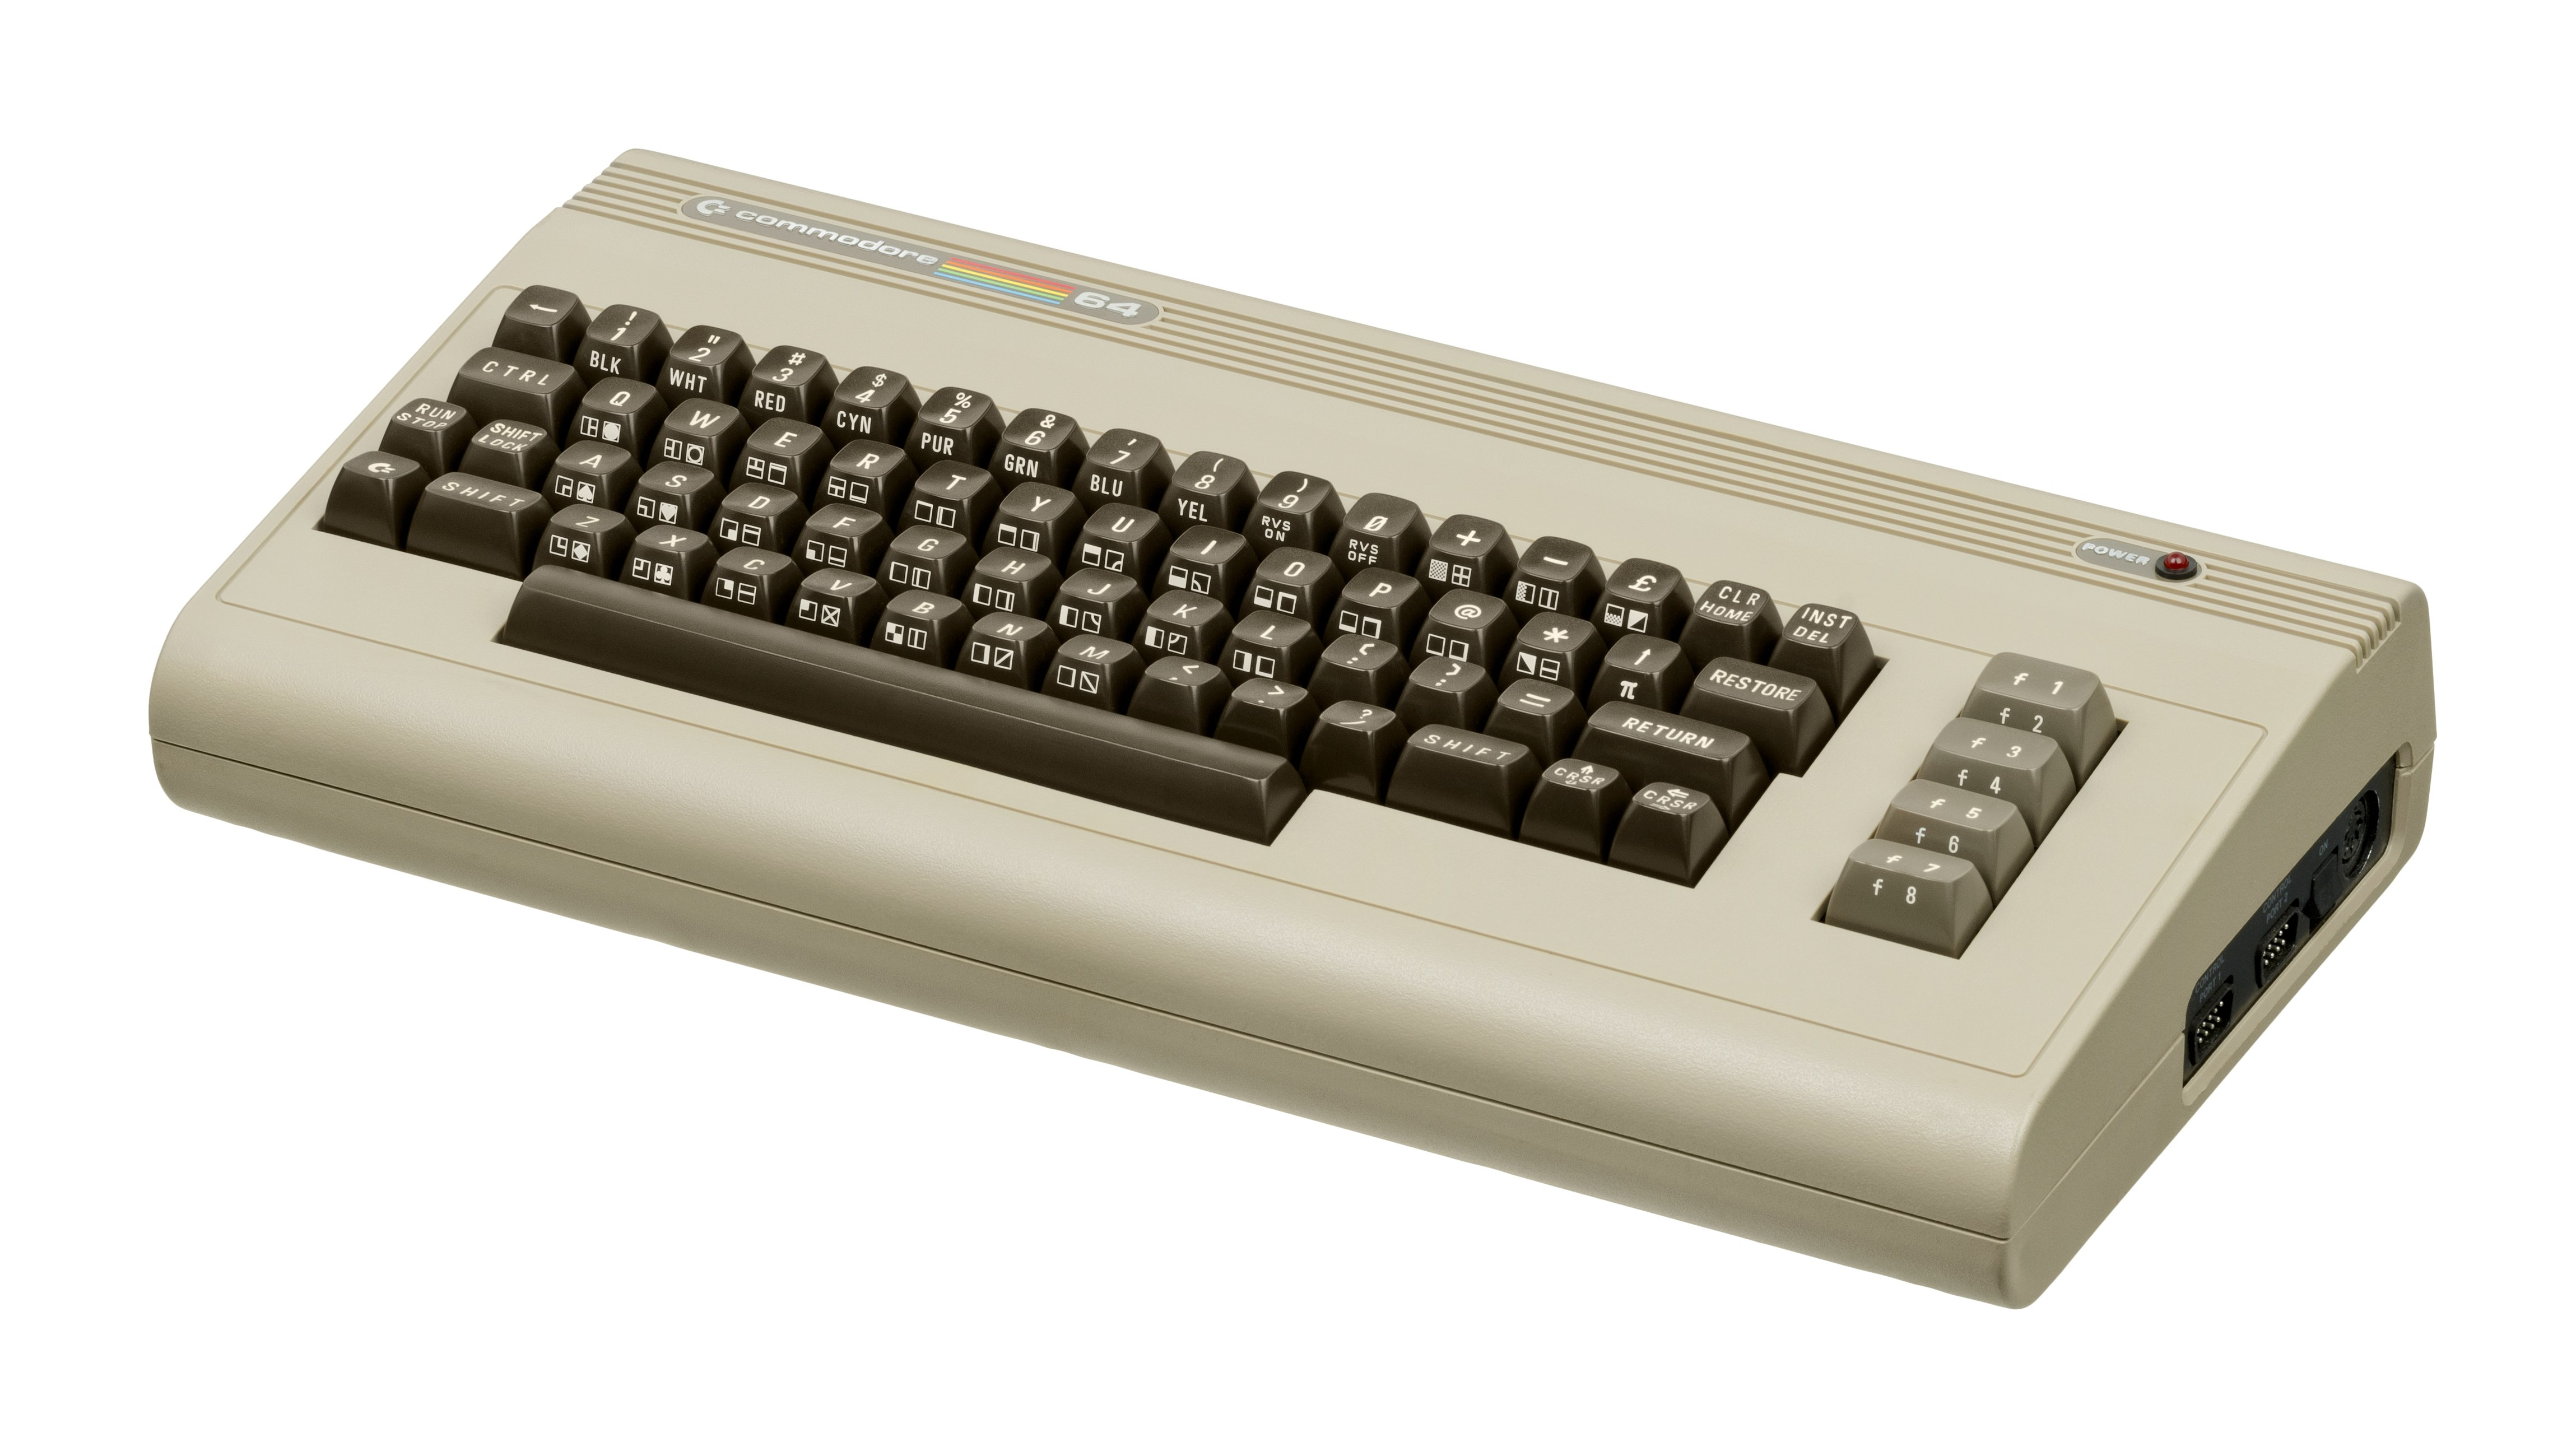 97ca76146a6 Commodore 64 - The complete information and online sale with free shipping.  Order and buy now for the lowest price in the best online store!